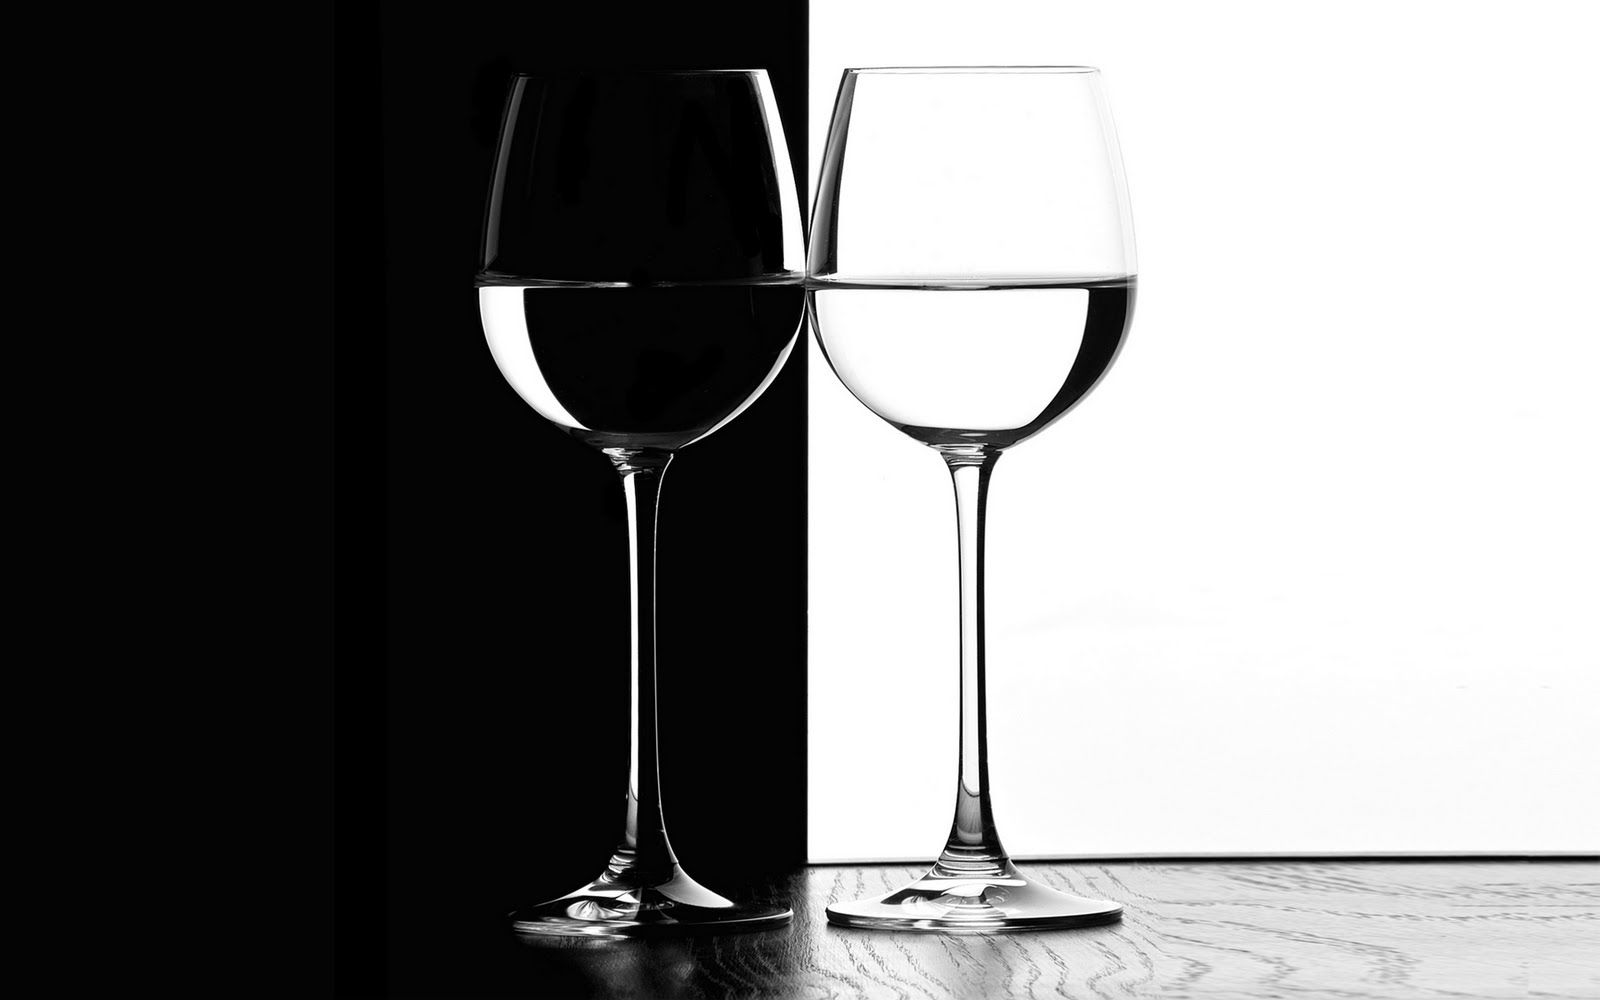 Contrast Contrast Photography High Contrast Photography Wine Wall Art Decor